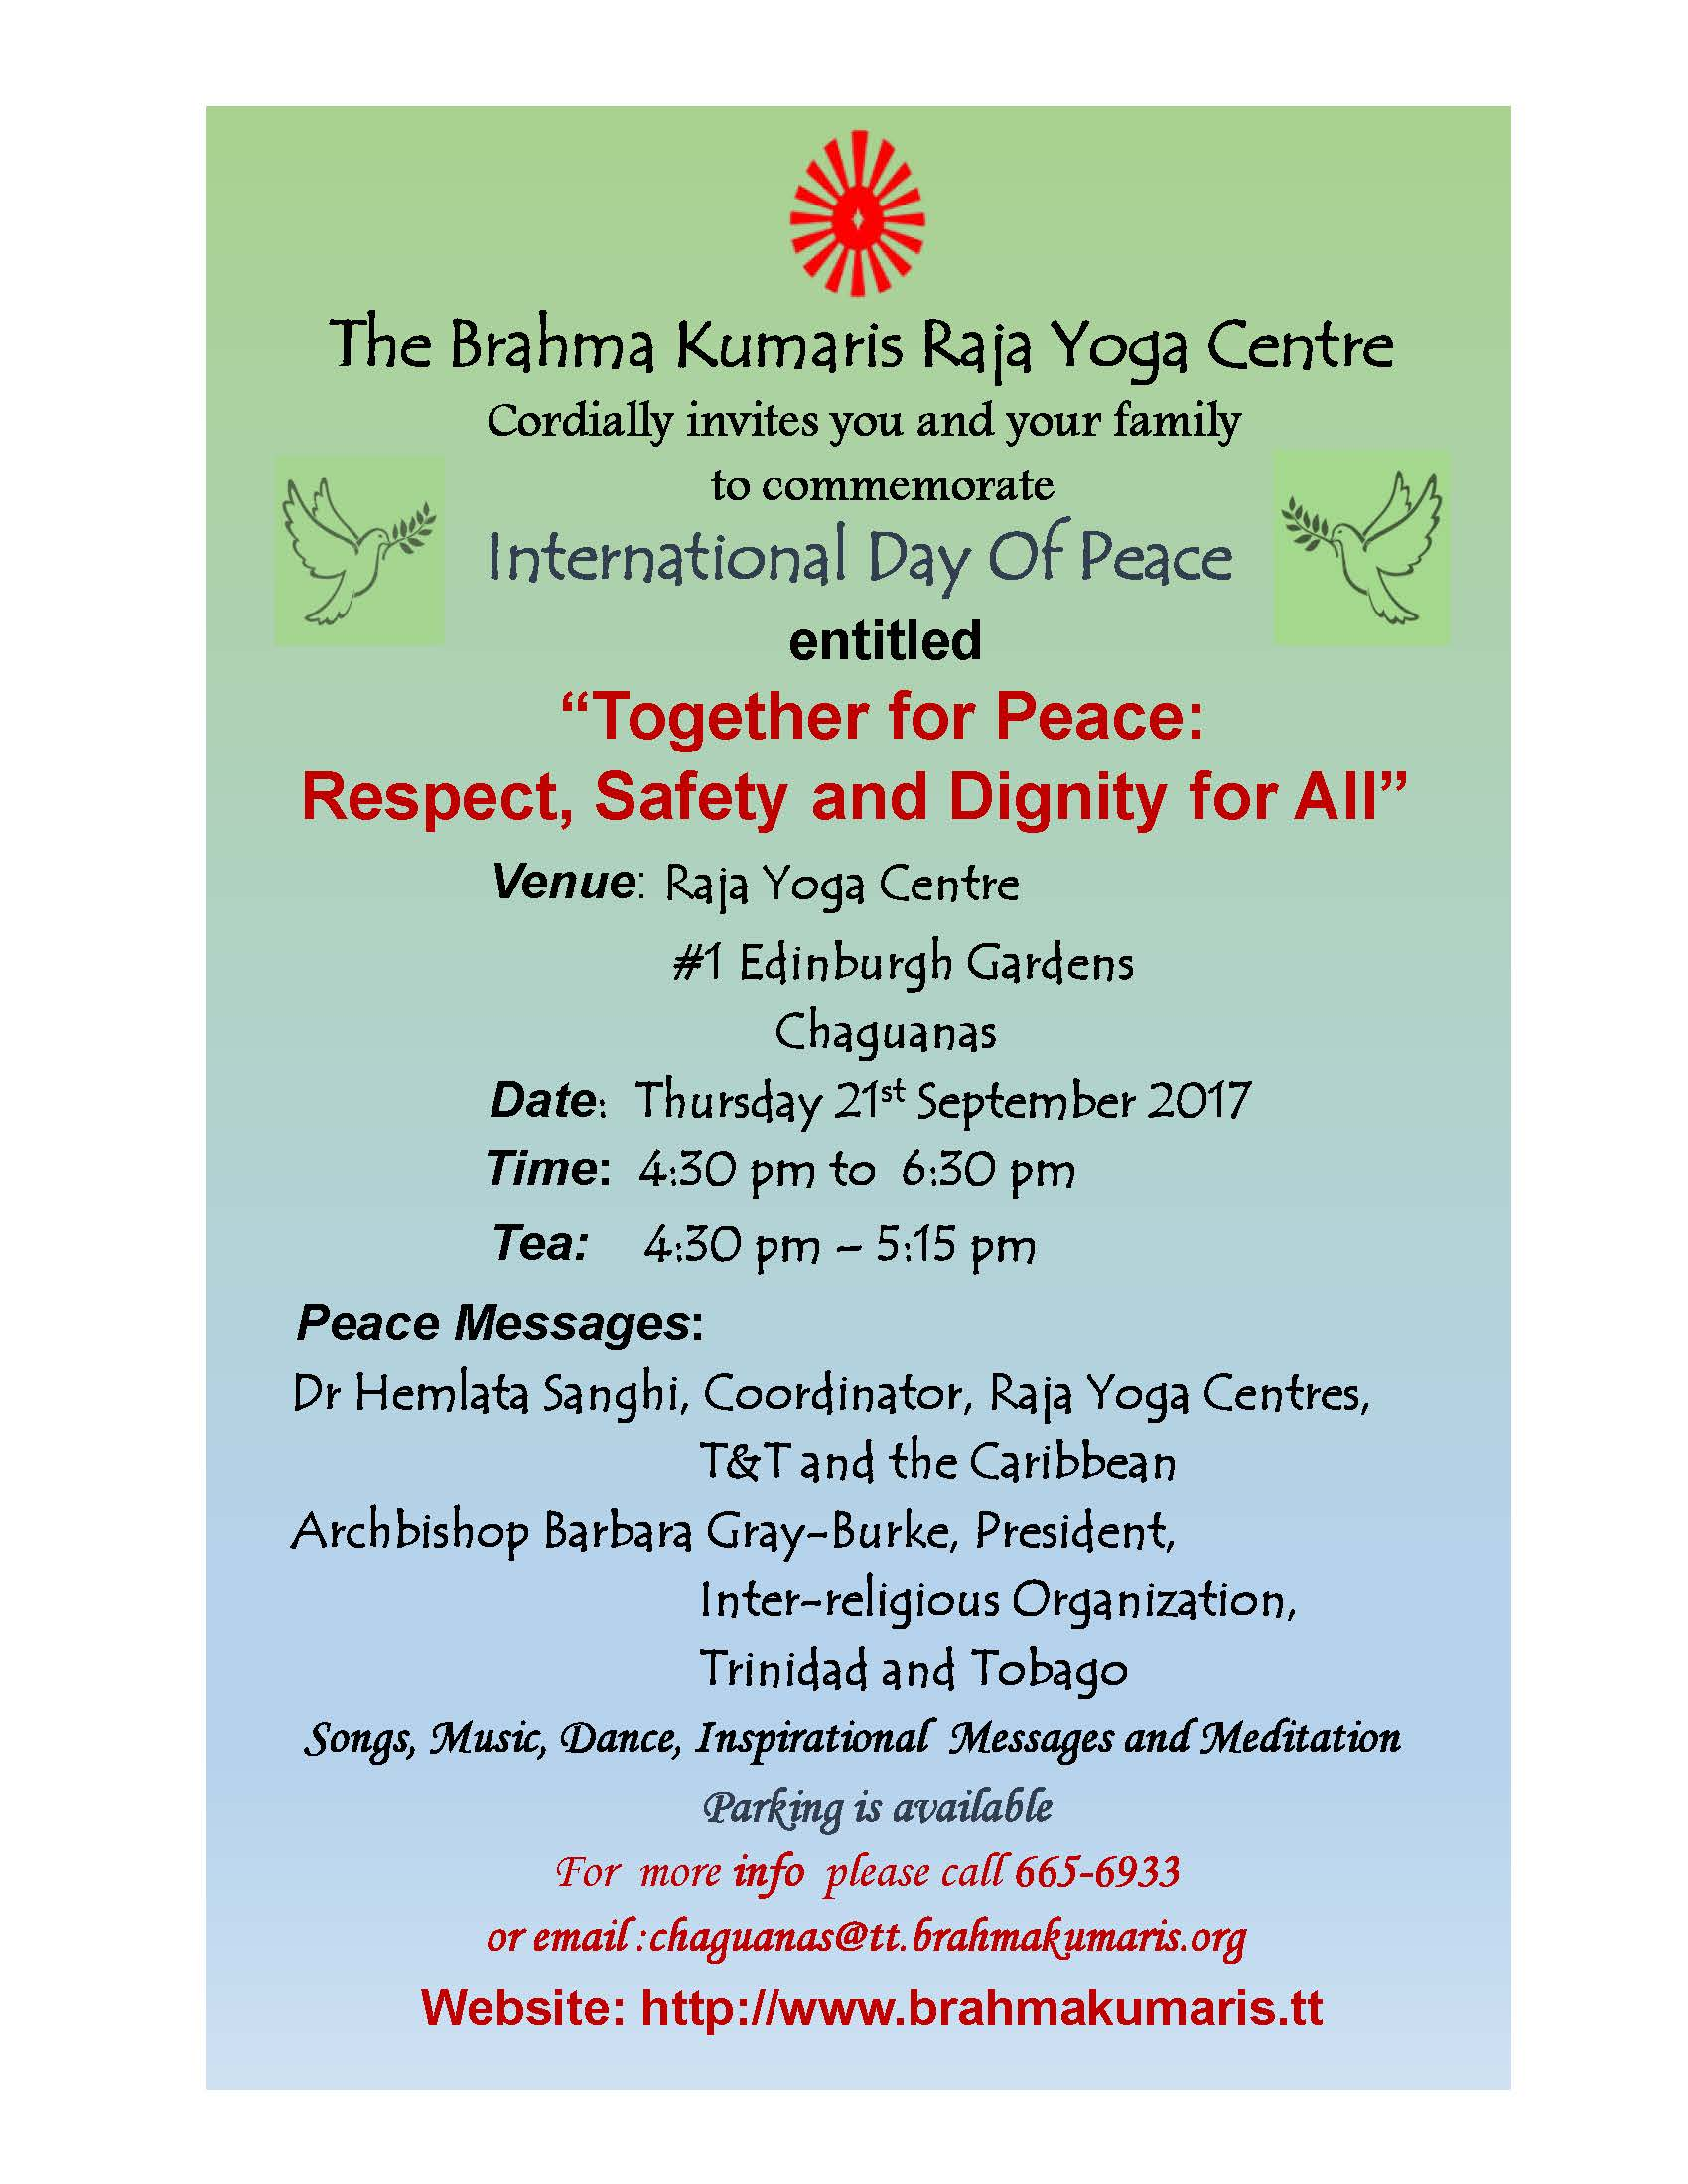 Together for Peace: Respect, Safety and Dignity for All